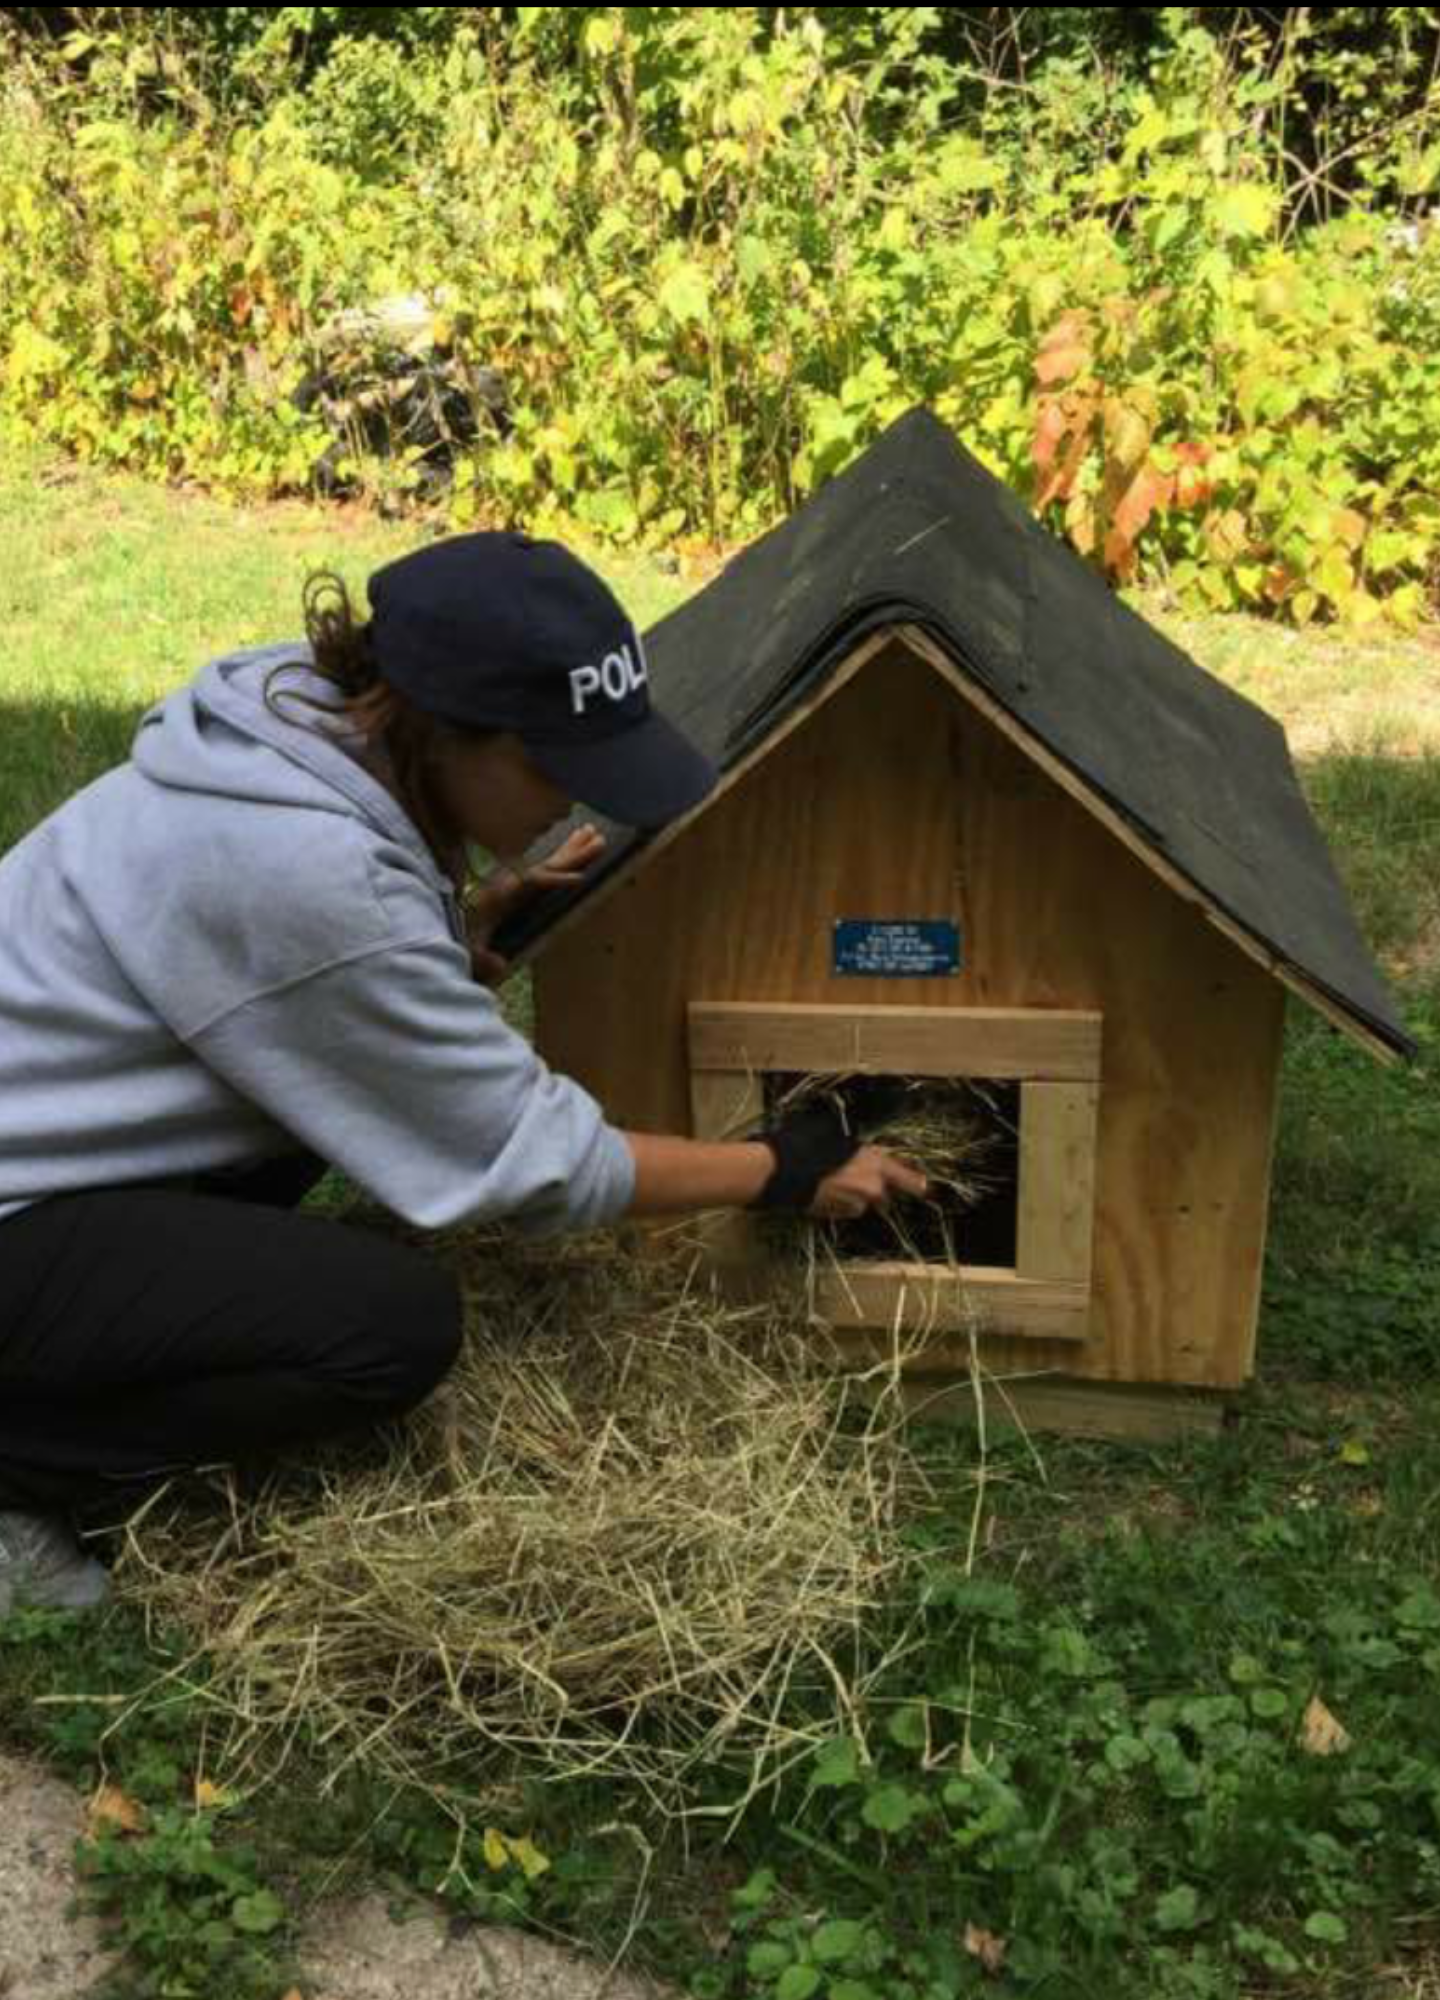 Feral cat house donation